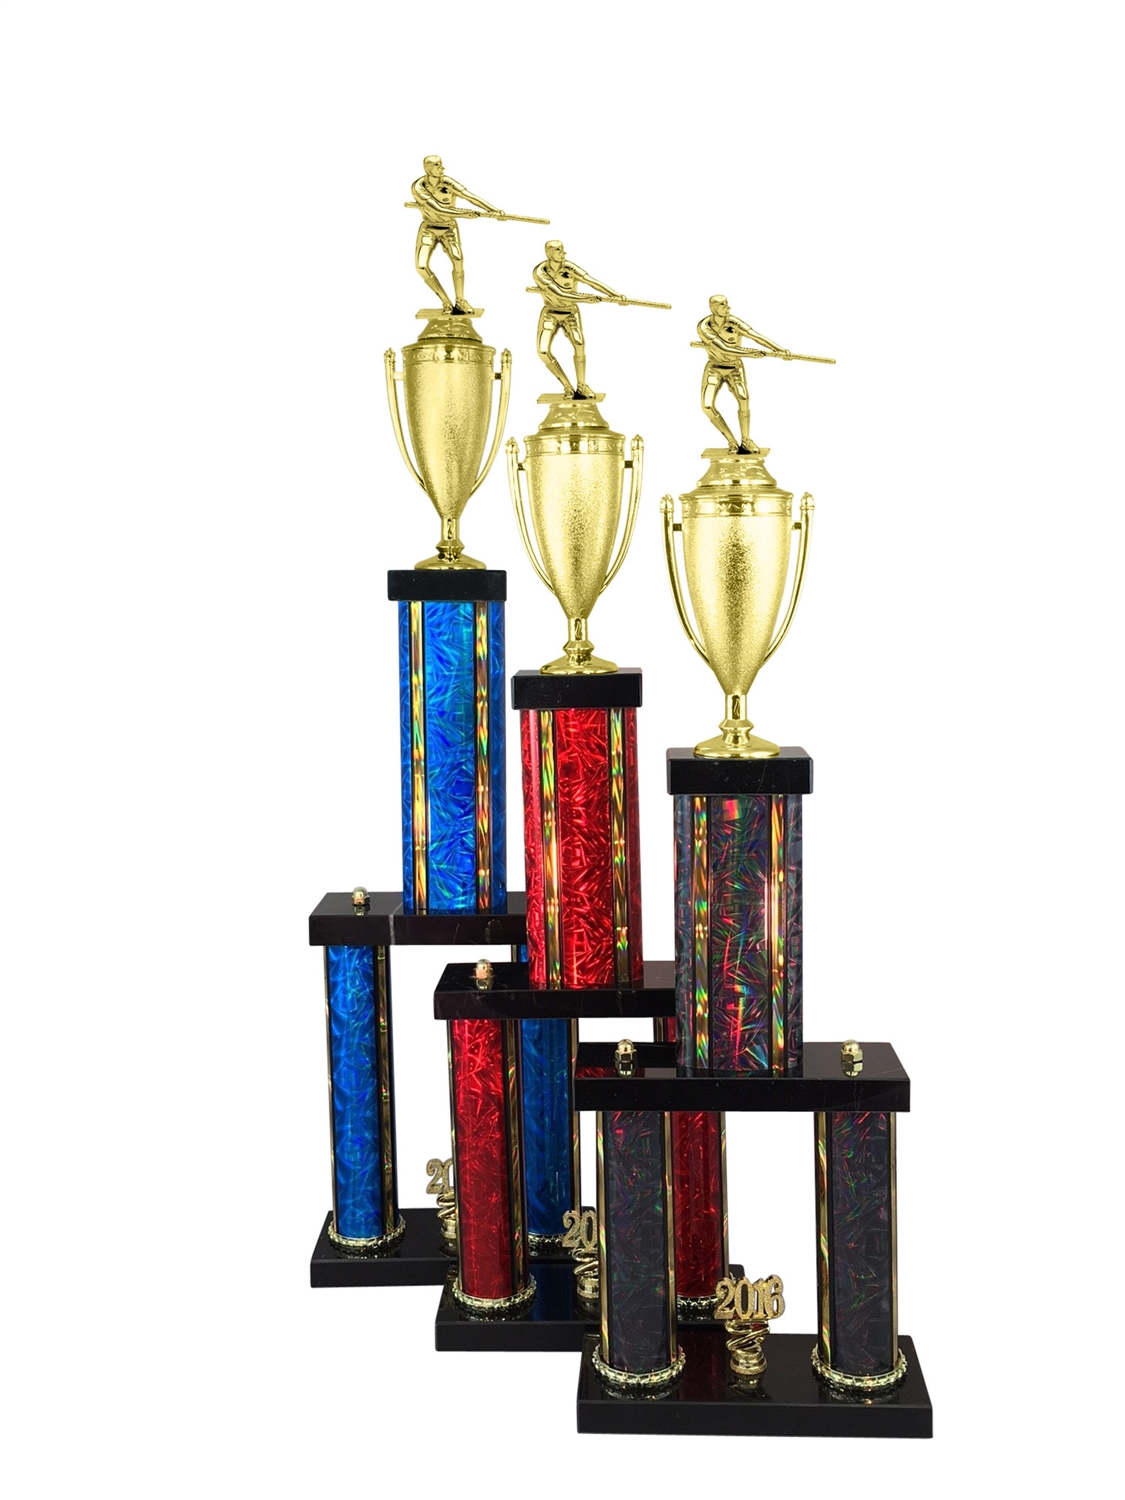 Tug of War Trophy Available in 11 Color & 6 Size Options